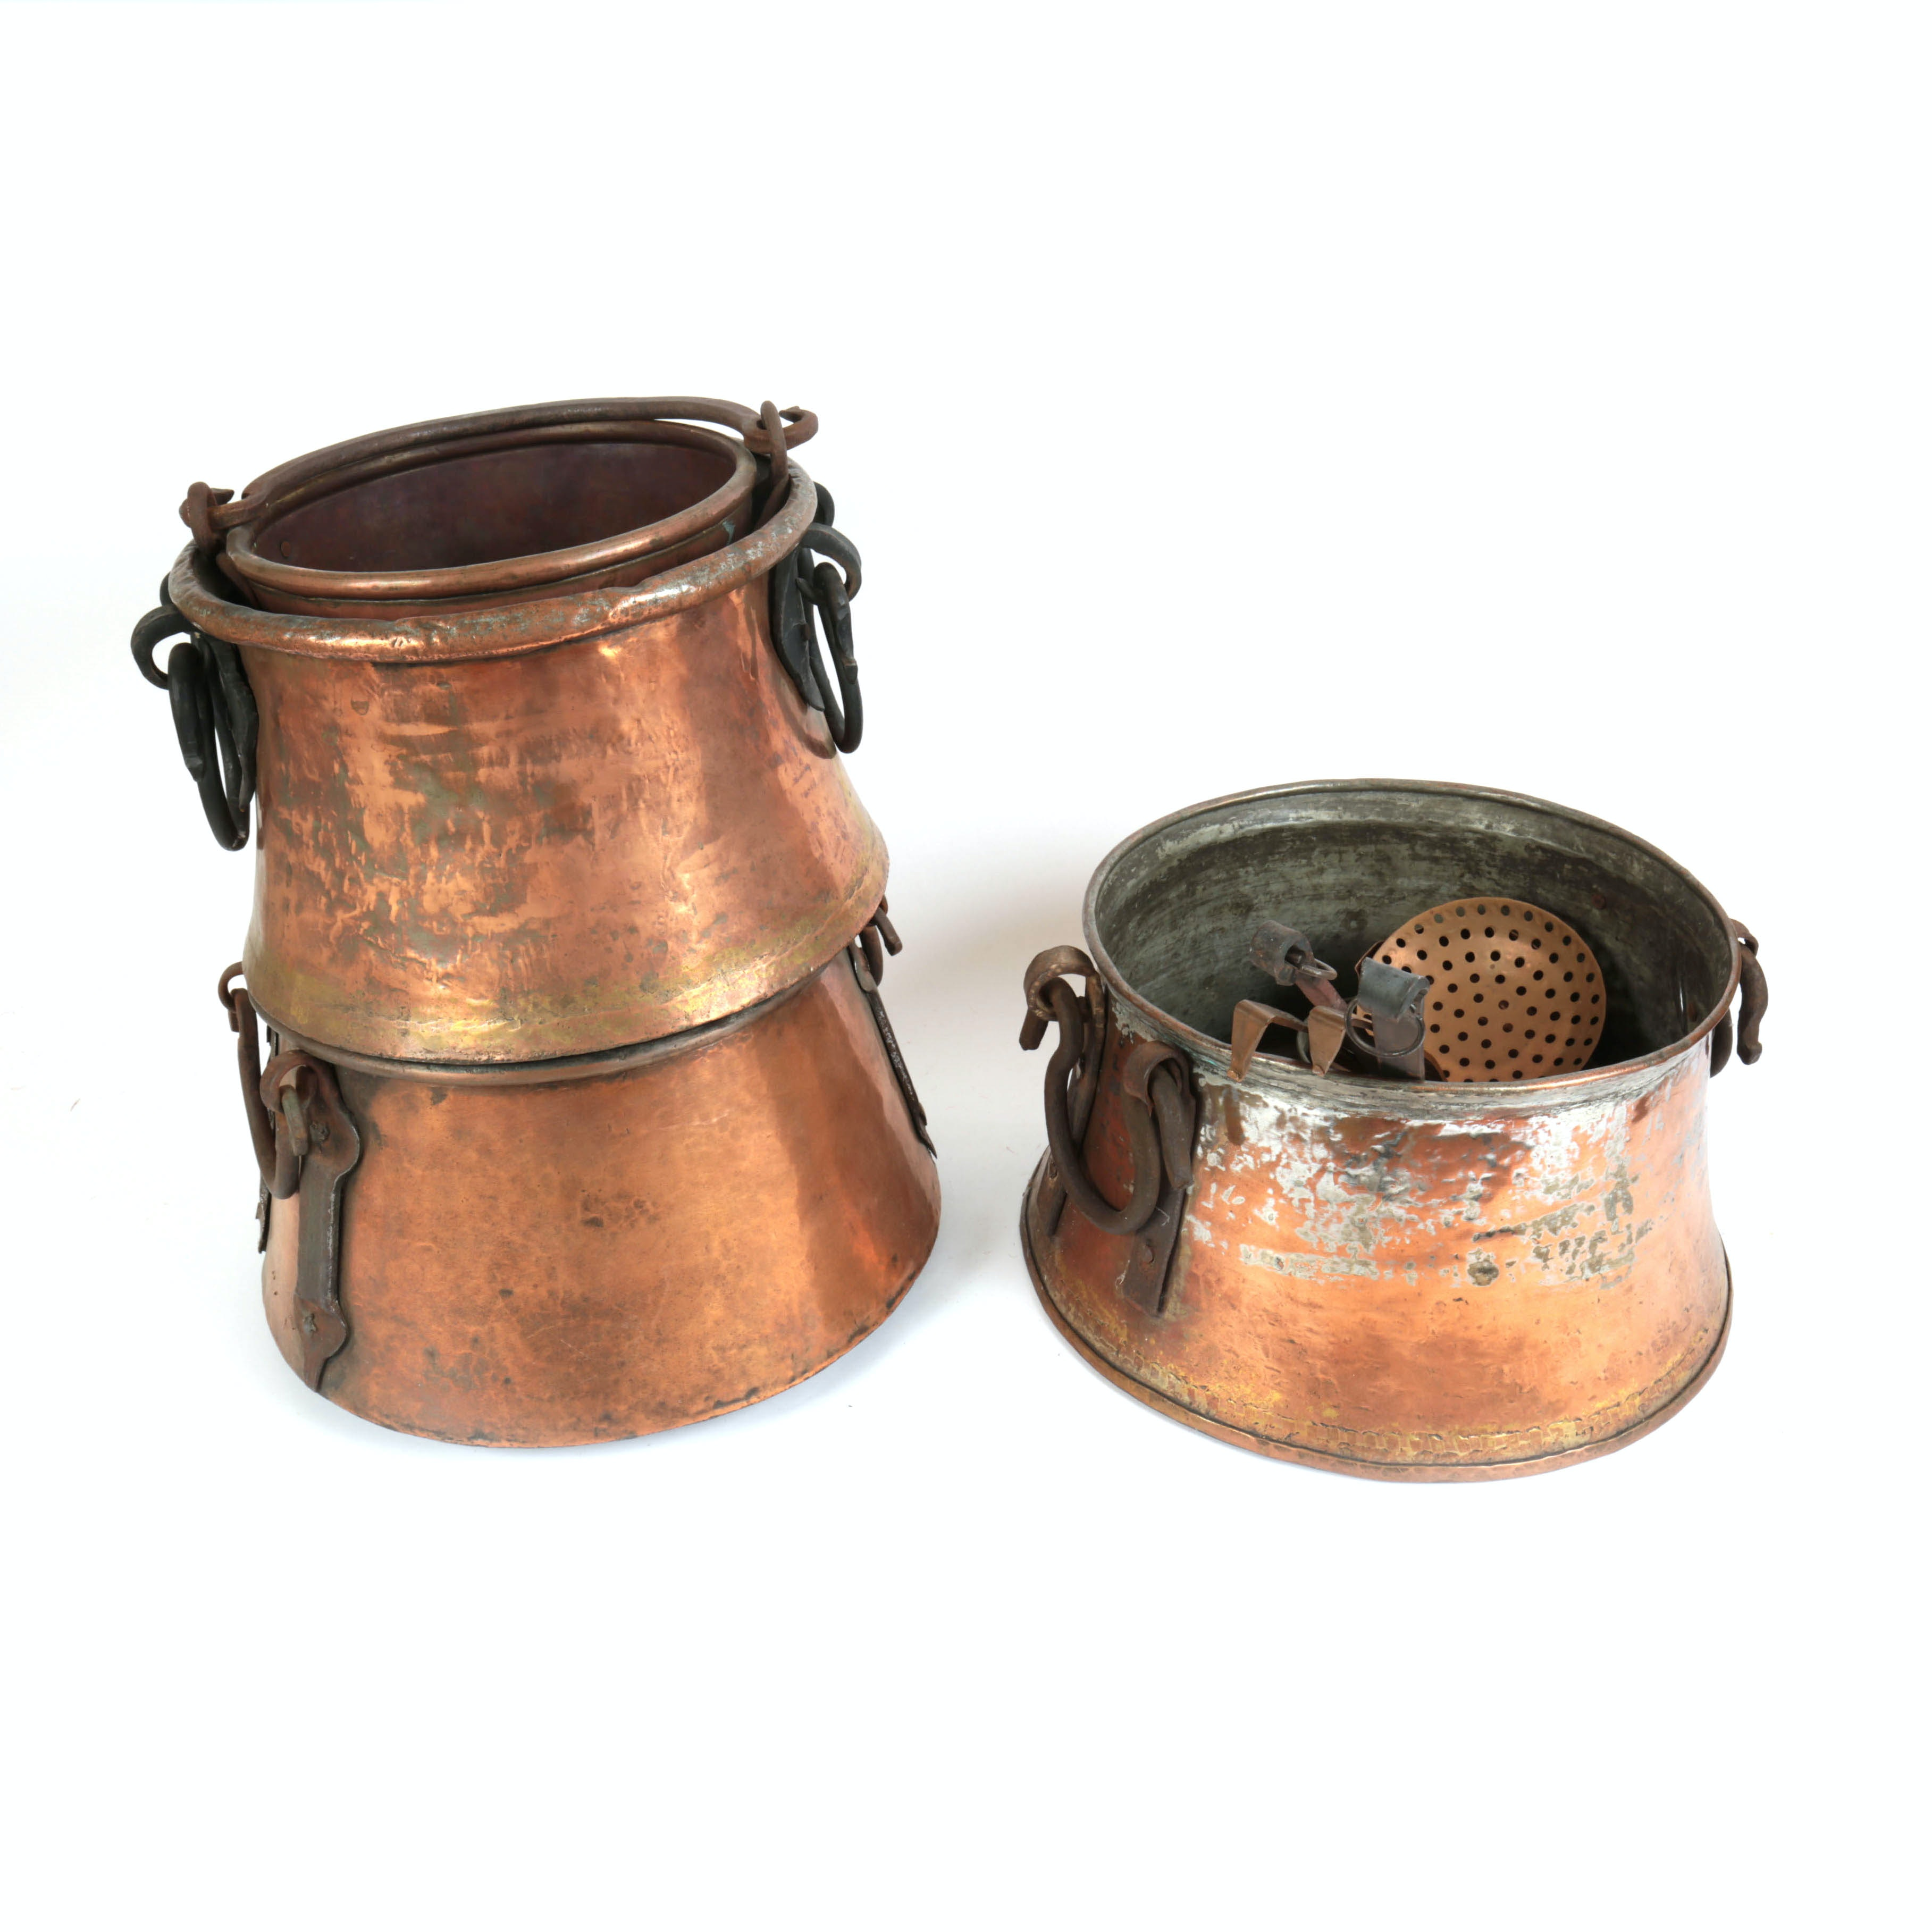 Copper Pots and Utensils